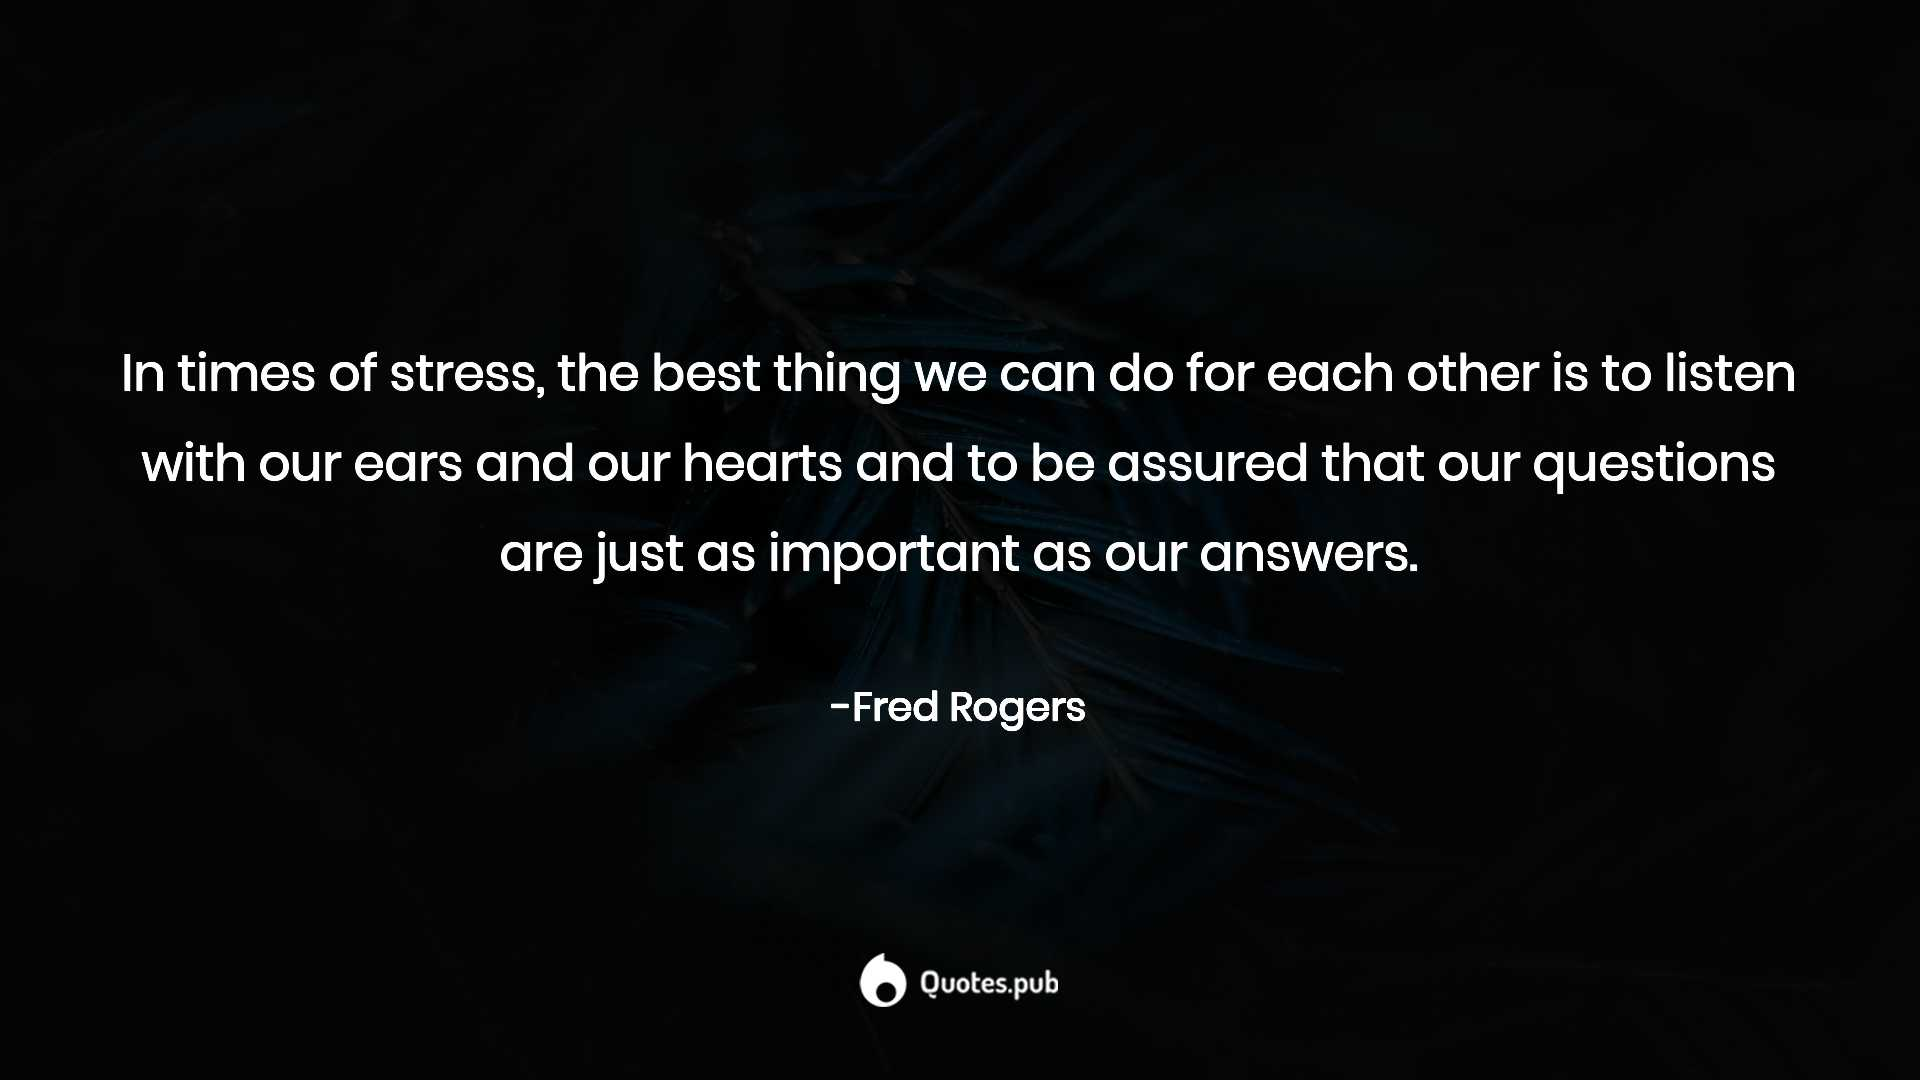 In Times Of Stress The Best Thing We Ca Fred Rogers Quotes Pub